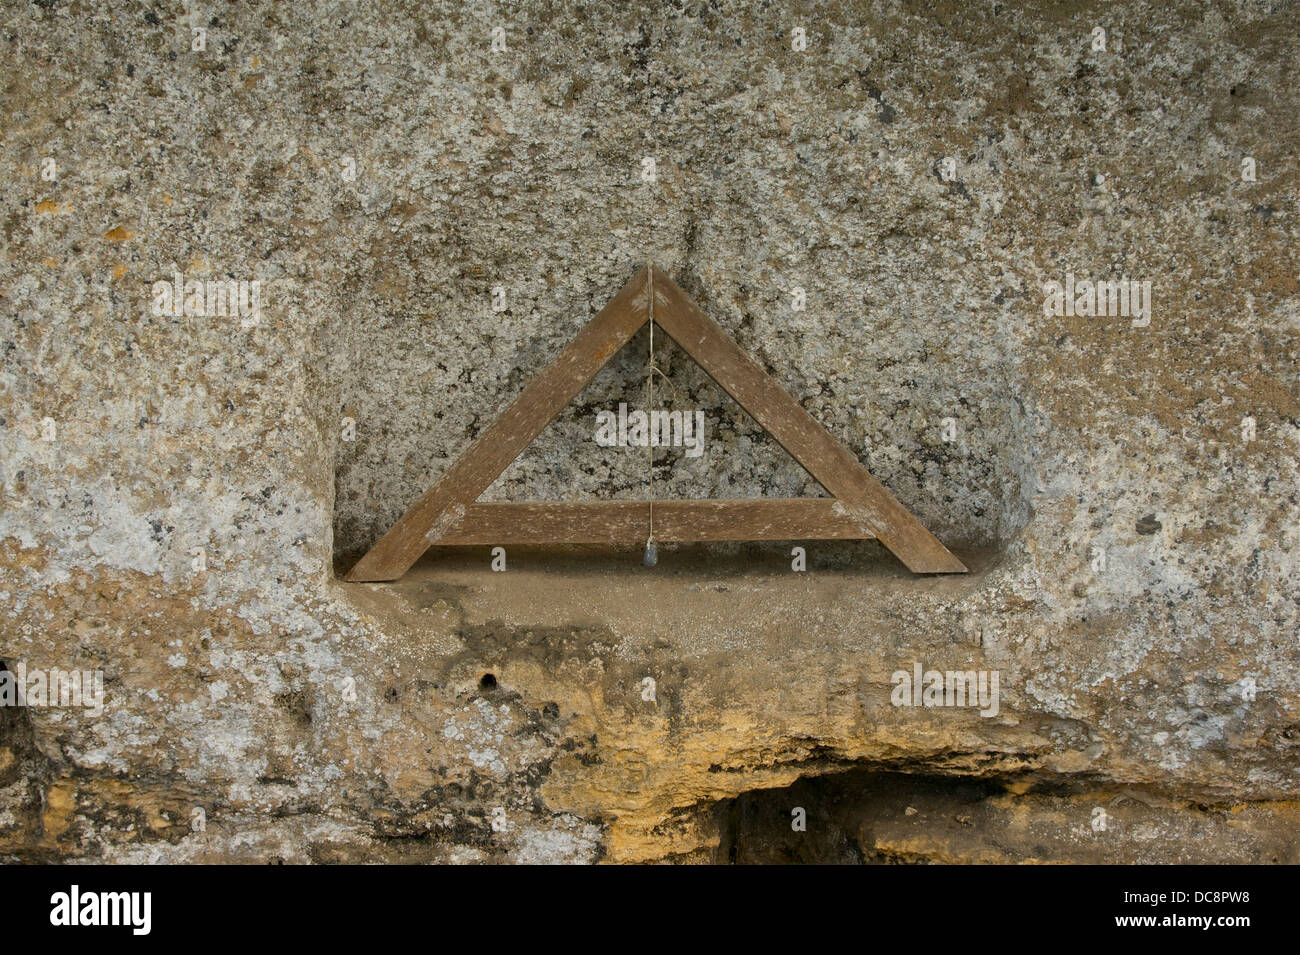 A plumb-line (archipendula), in La Roque Saint-Christophe, Dordogne, France Stock Photo